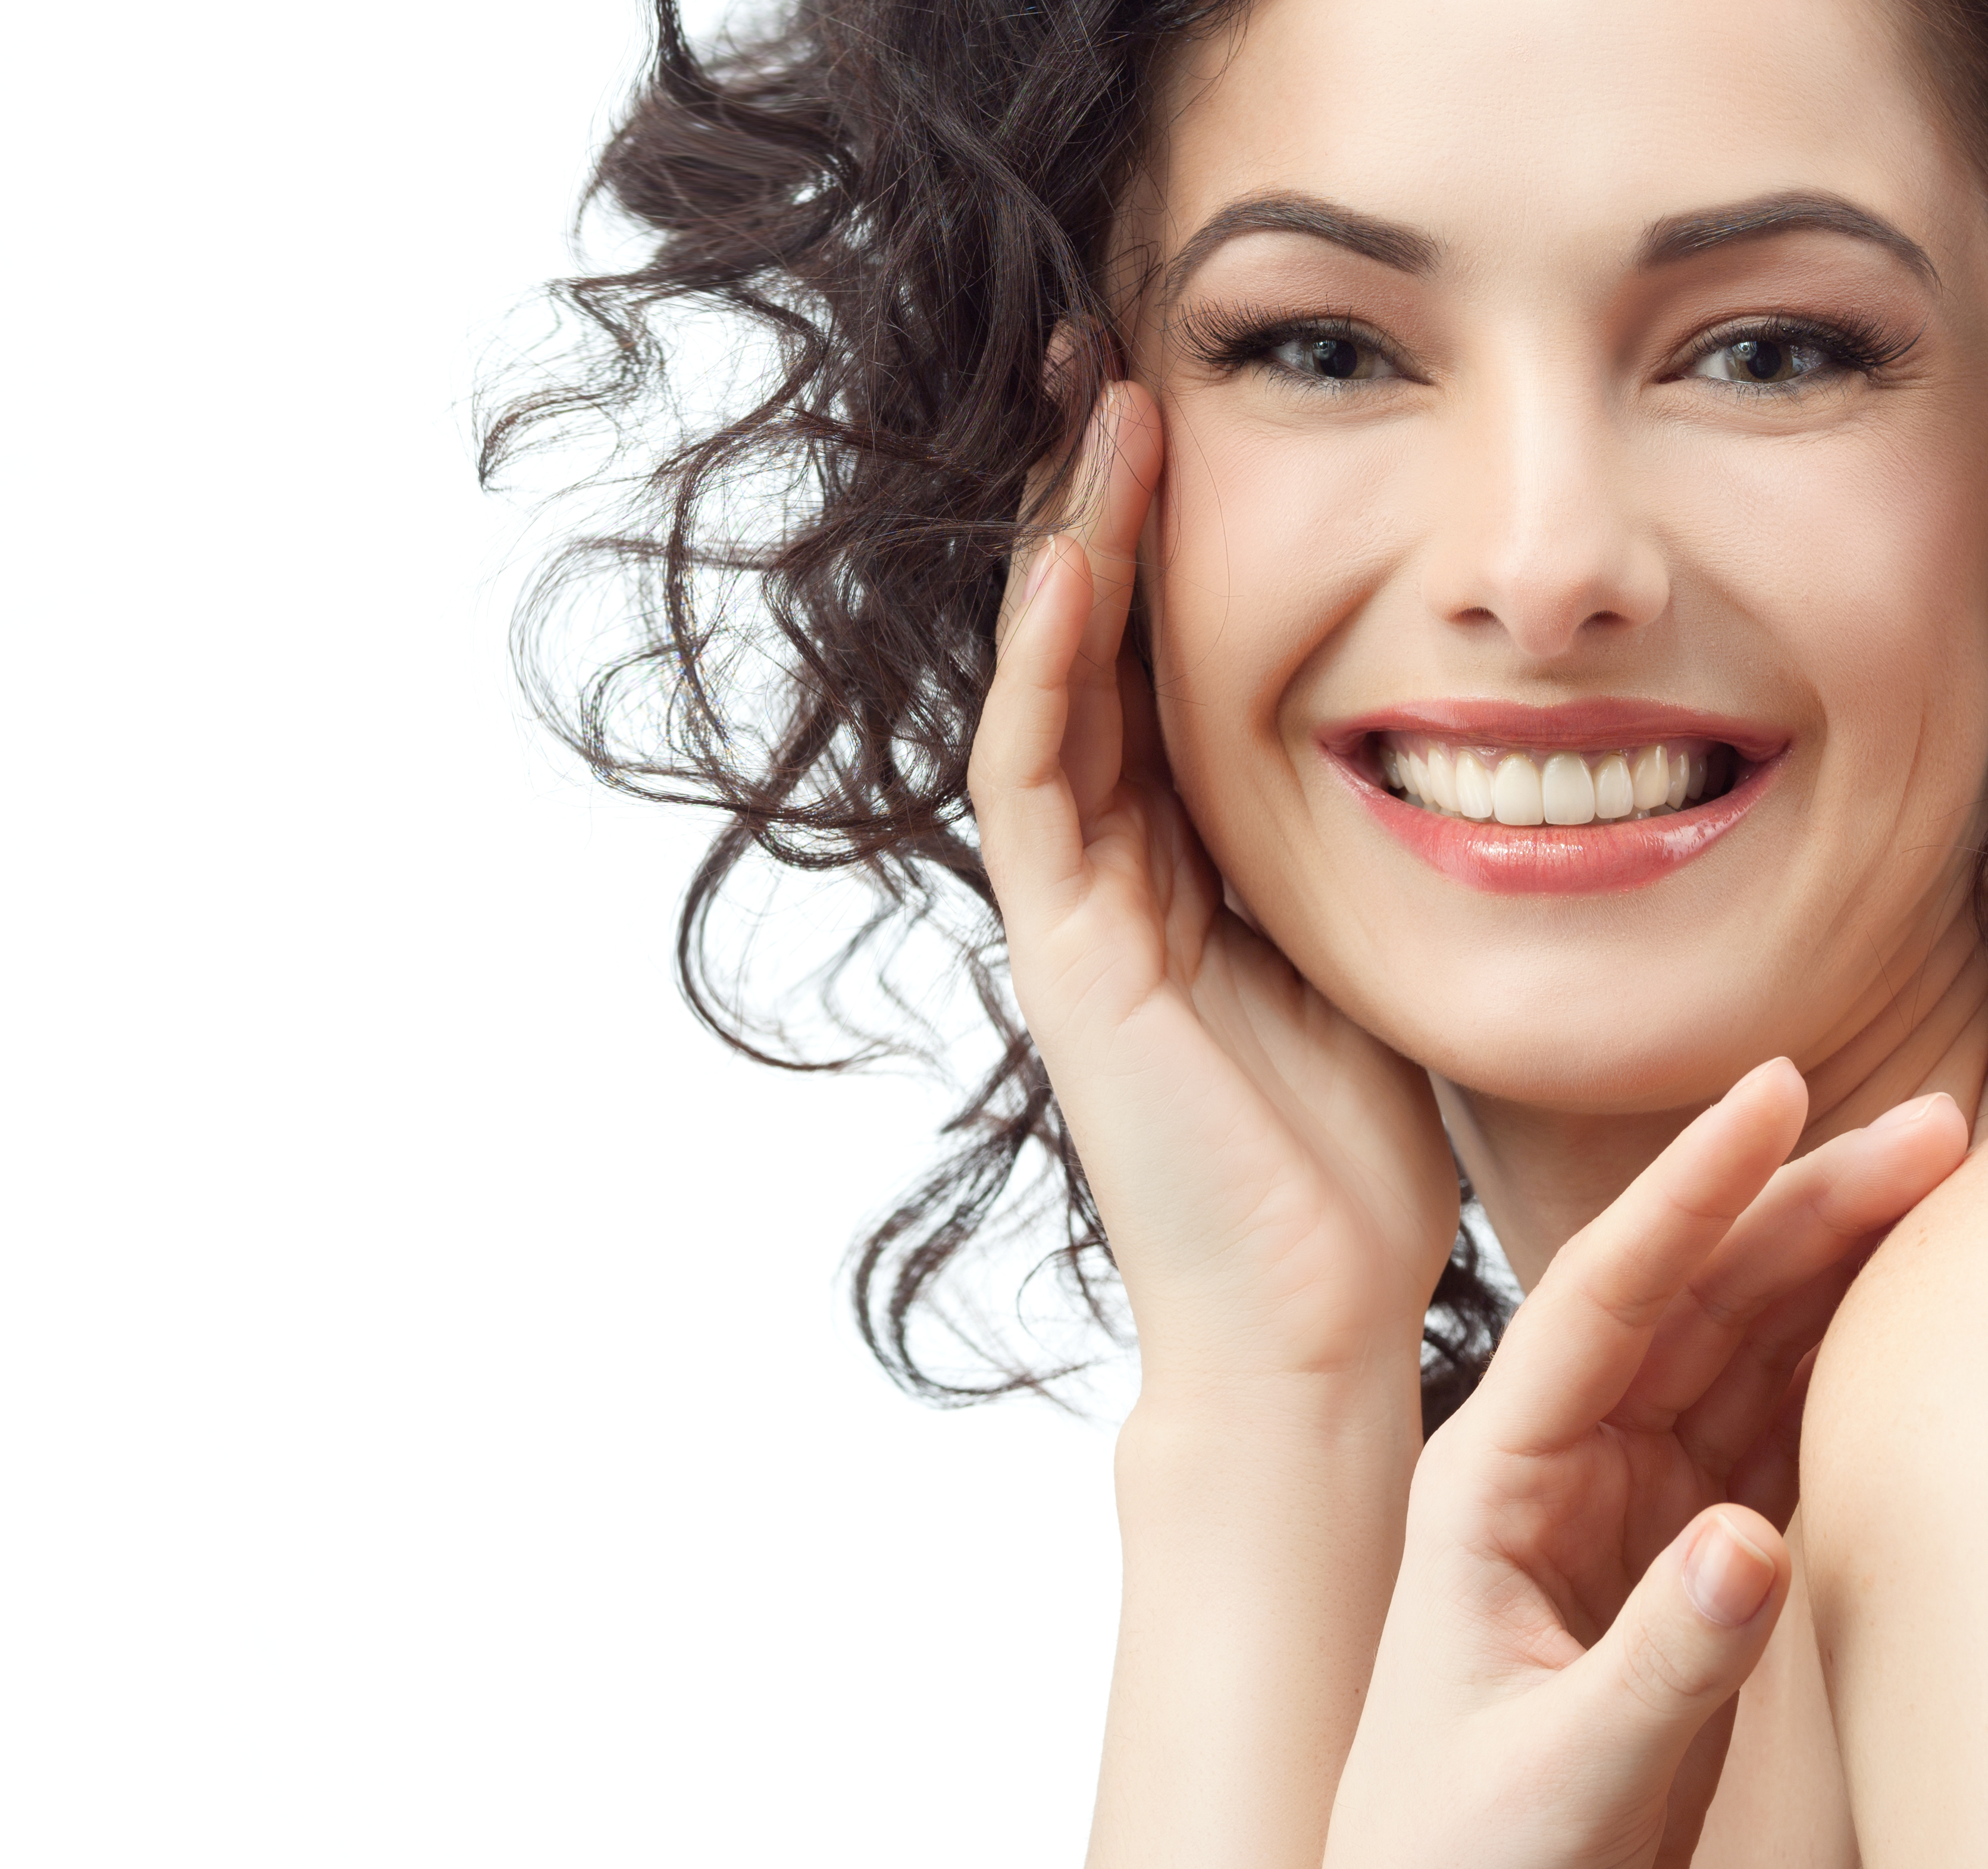 Skin Care Glansie: 7 Day-to-Day Basic Things You Can Do For A Healthy-Glowing